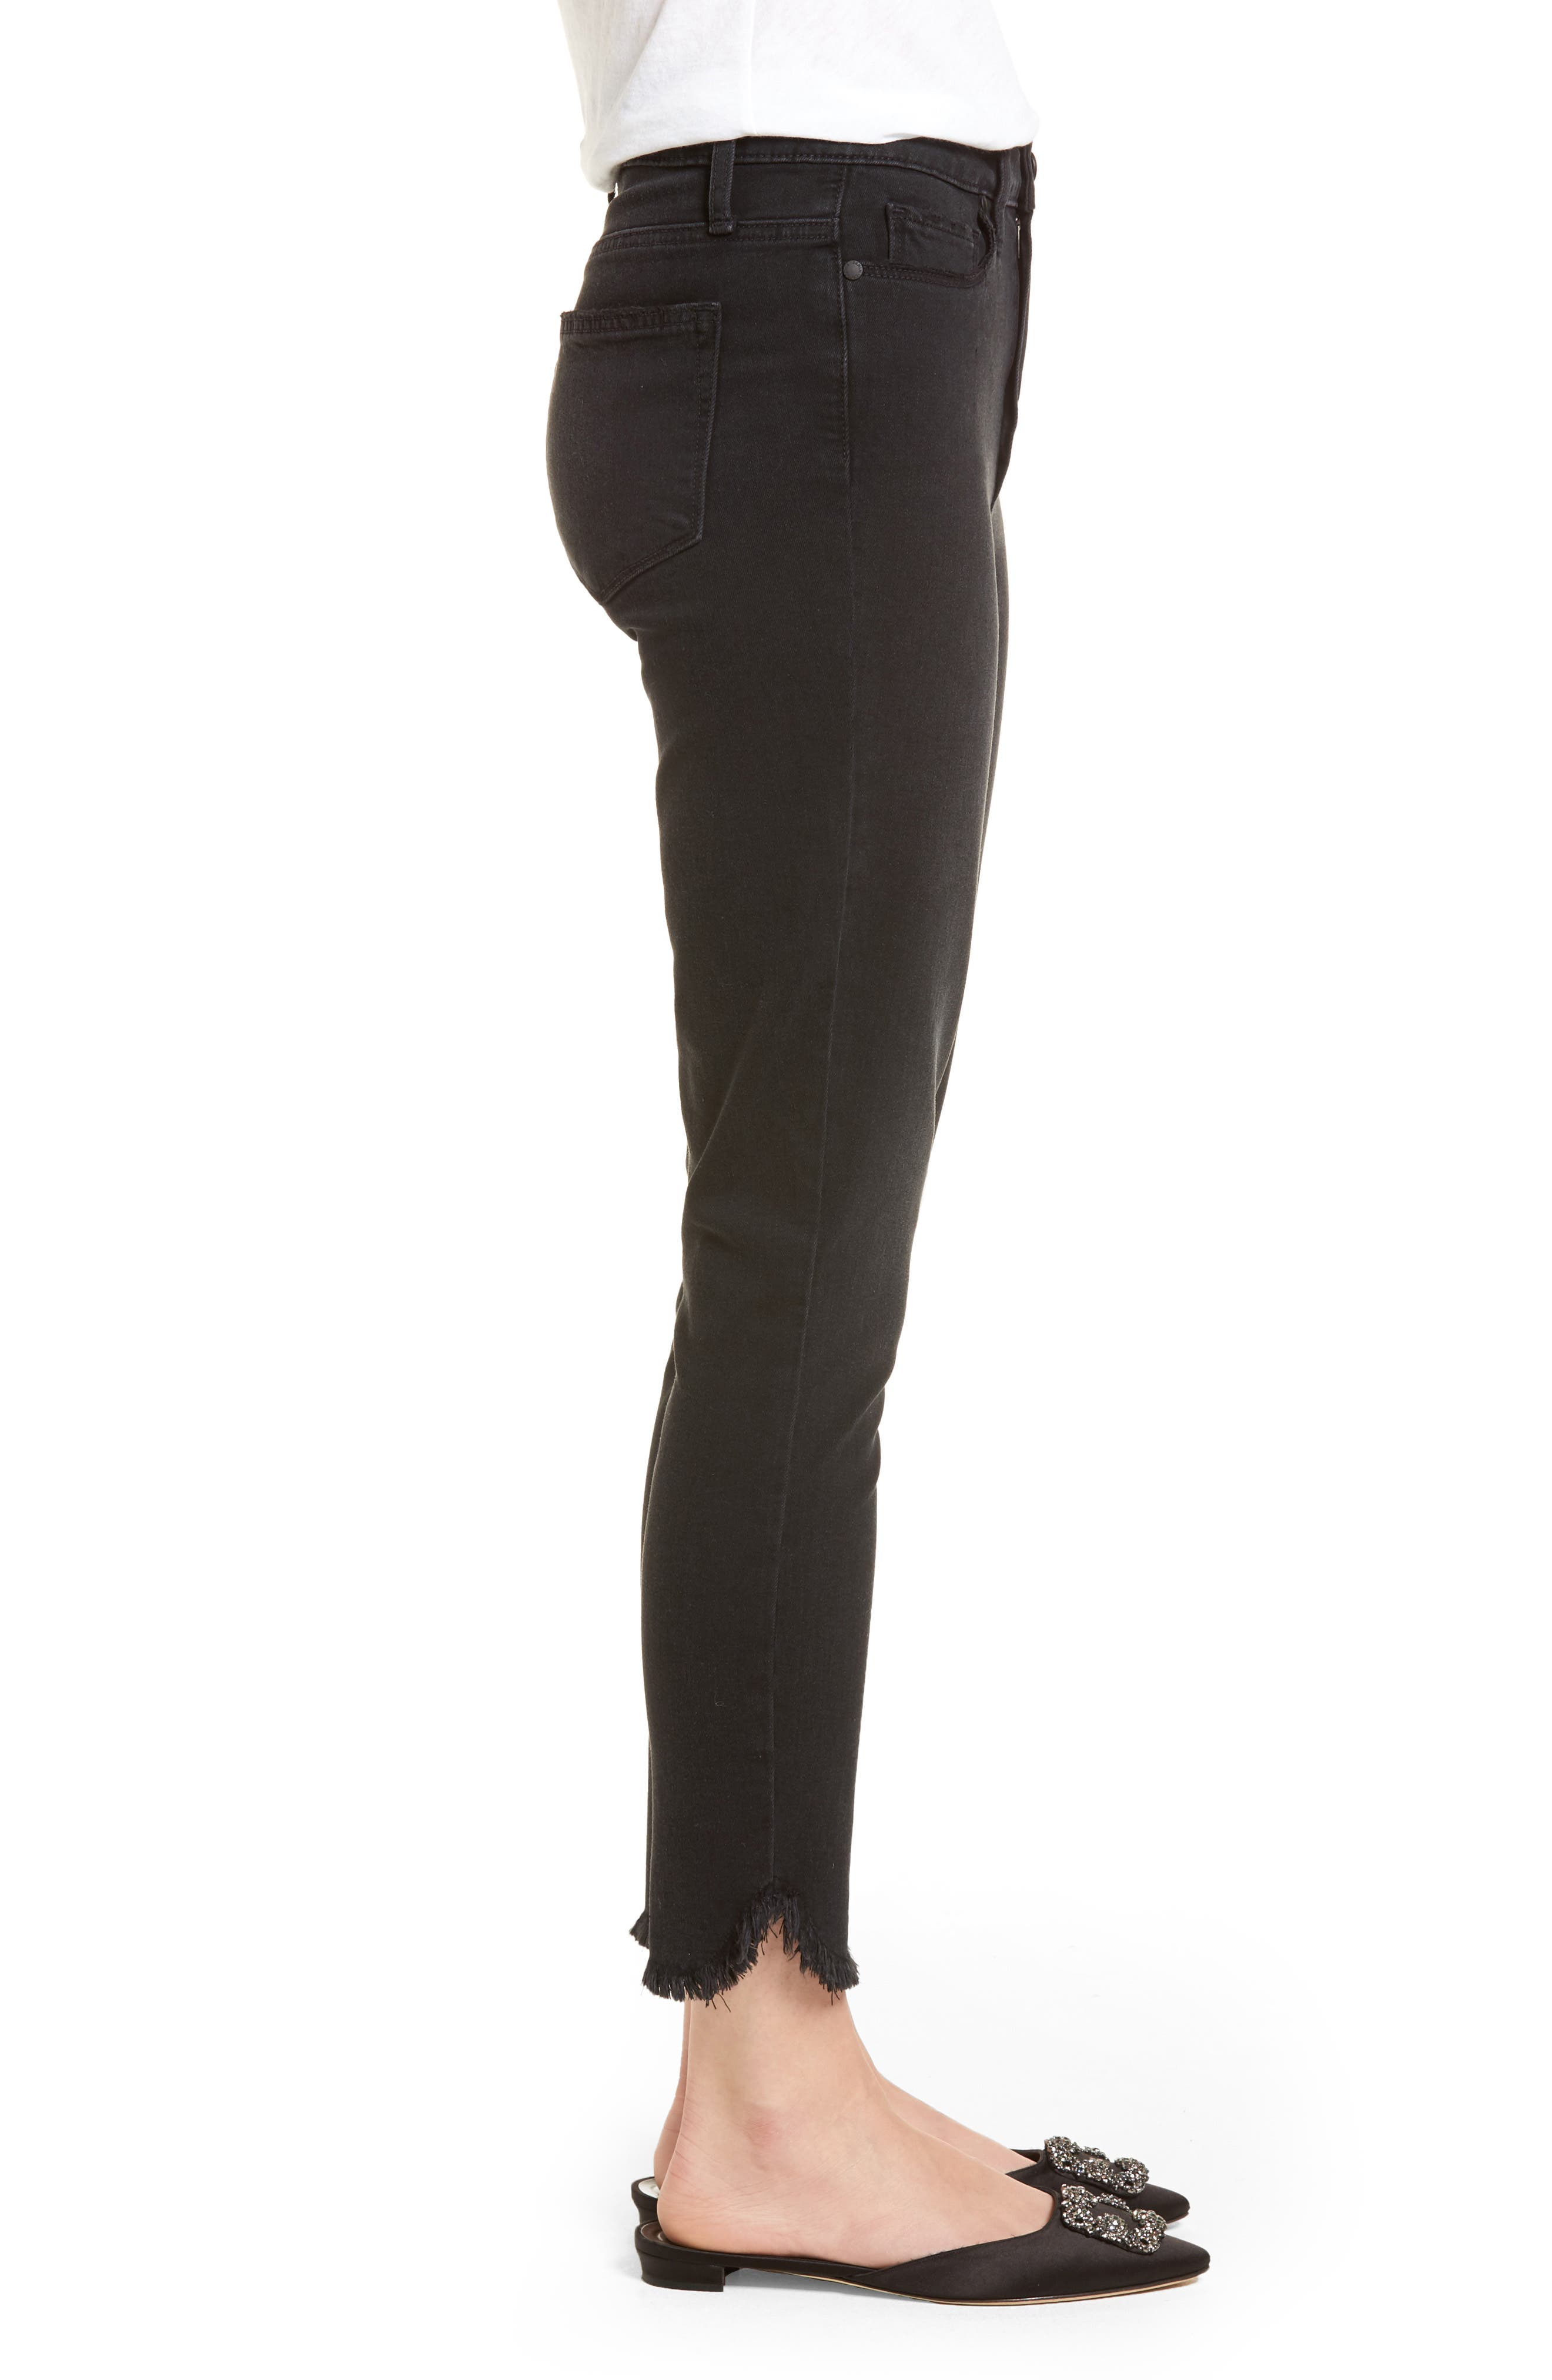 Transcend - Margot High Waist Crop Ultra Skinny Jeans,                             Alternate thumbnail 3, color,                             Draco